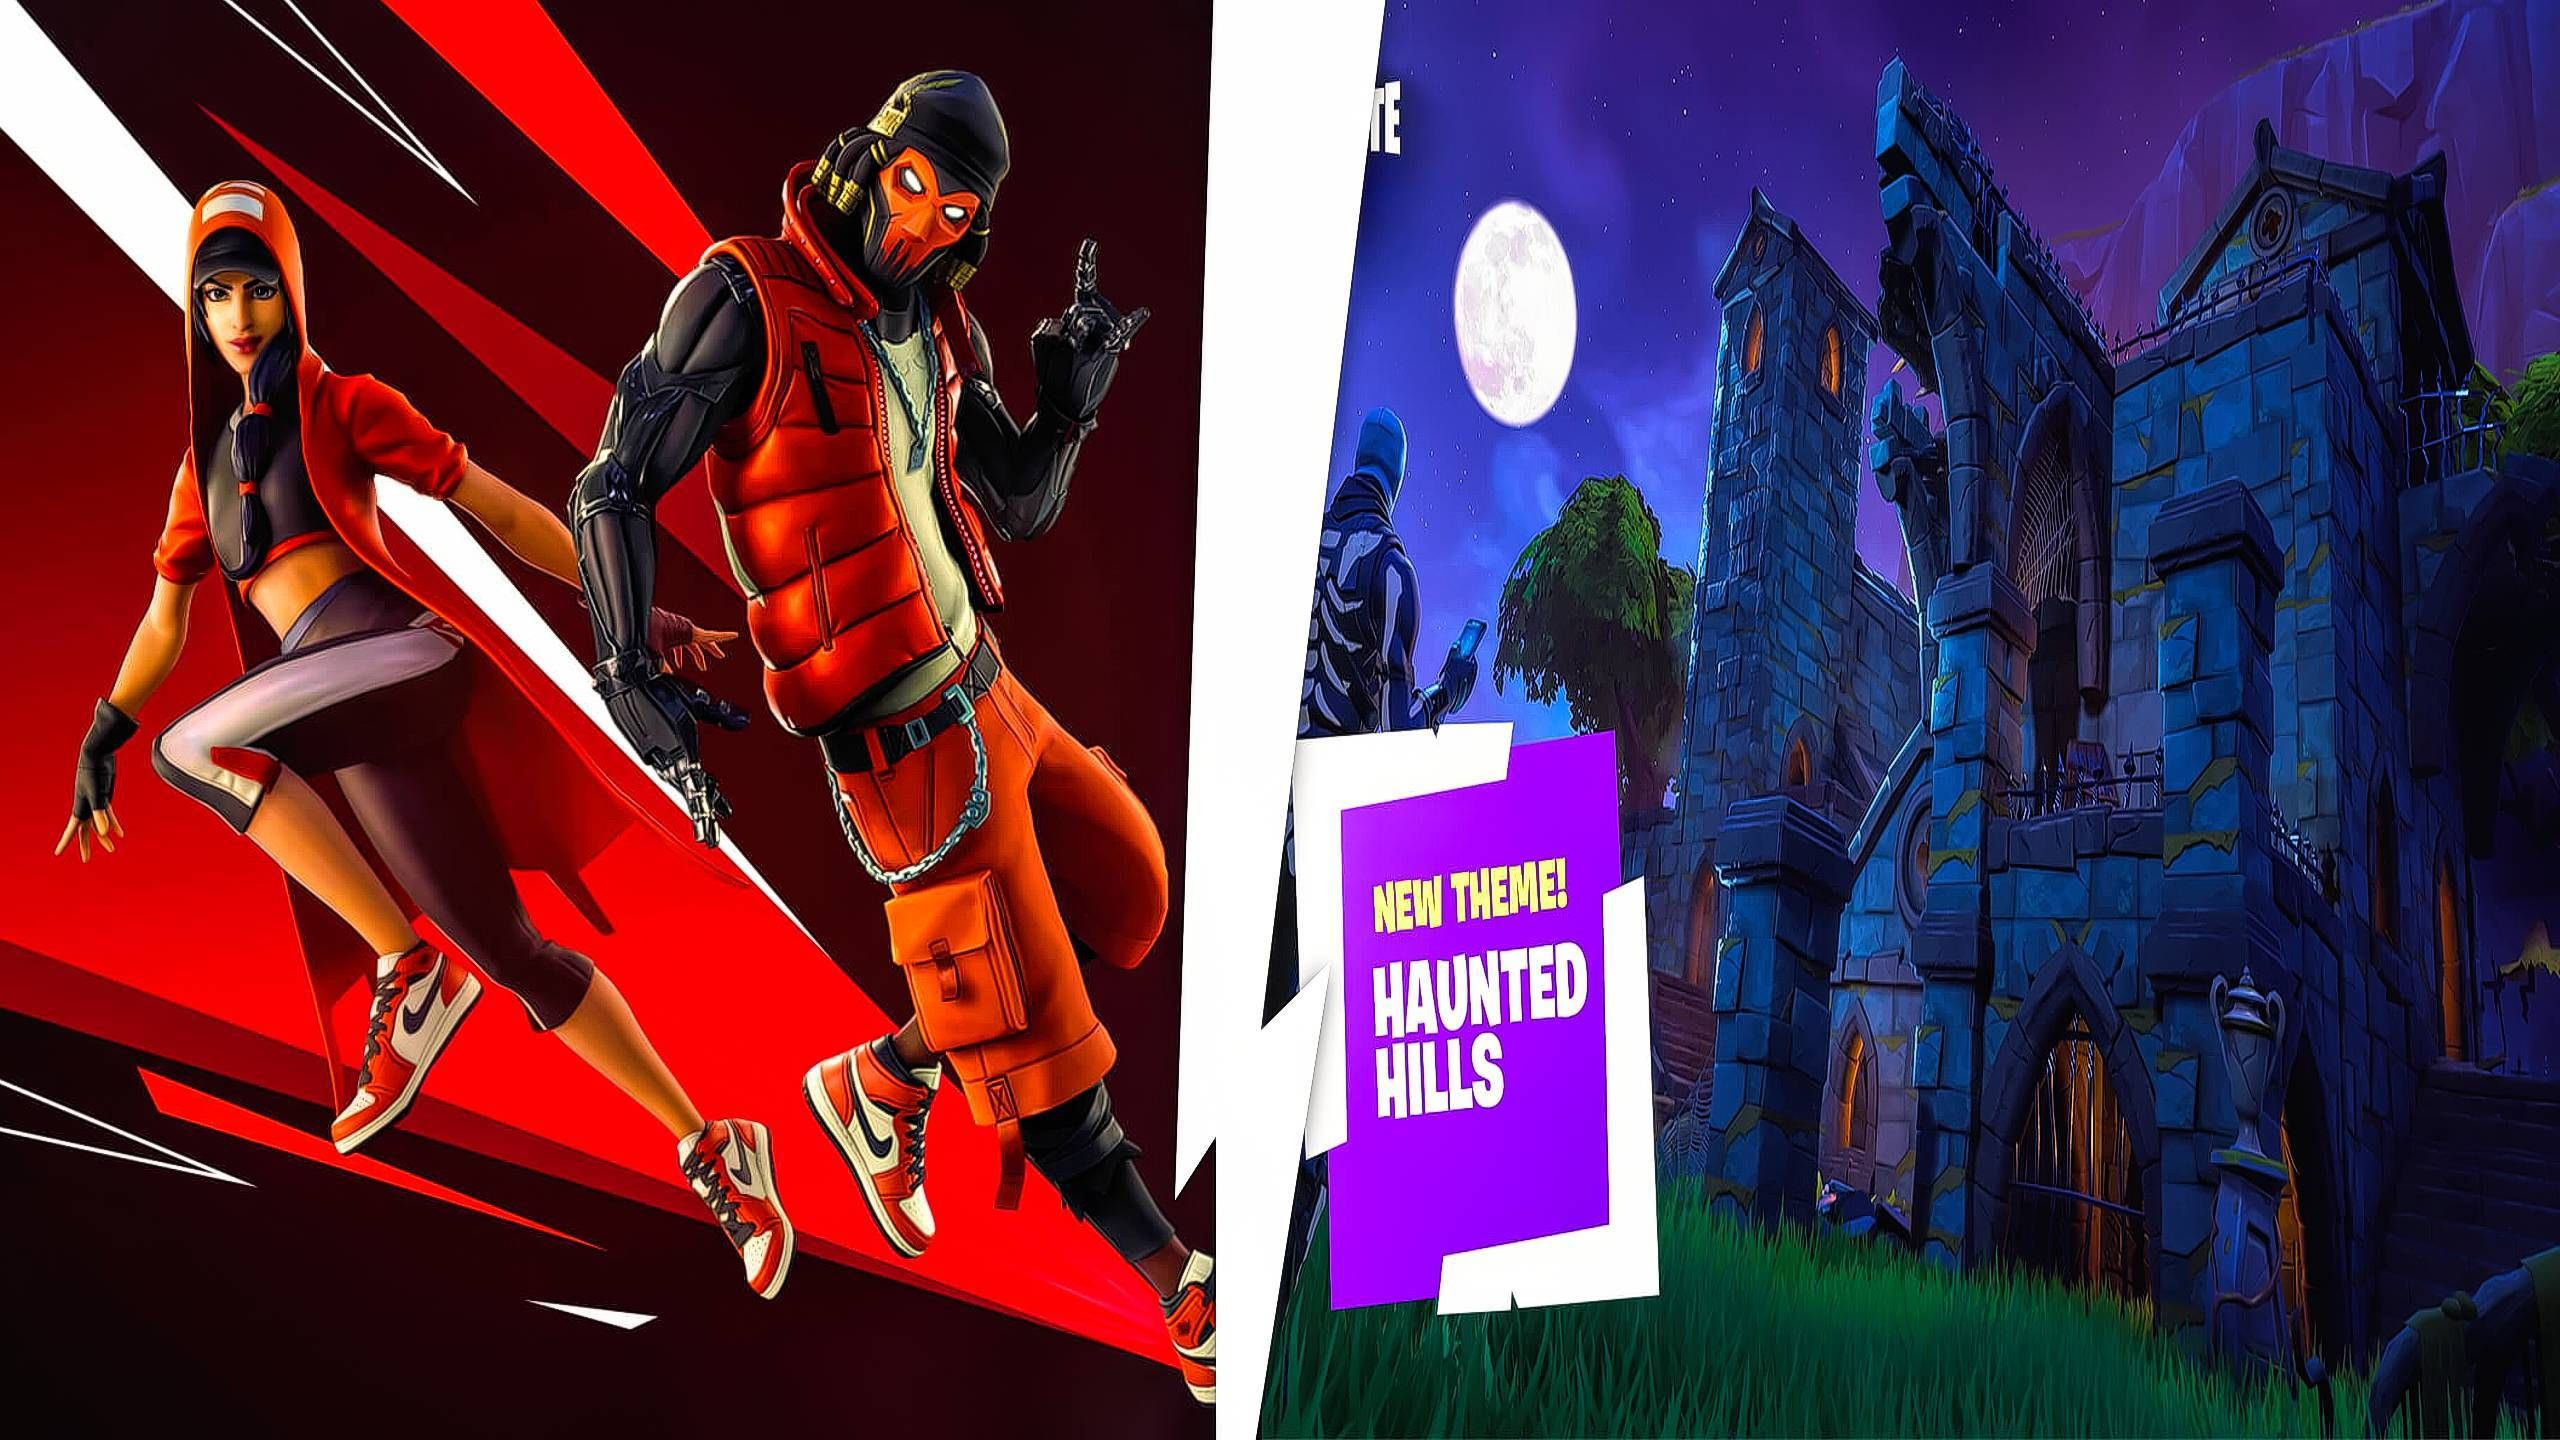 Fortnite X Jordan Ltm Haunted Hills Prefabs And Galleries Have Arrived In Patch V9 10 L2pbomb Fortnite Haunting Prefab